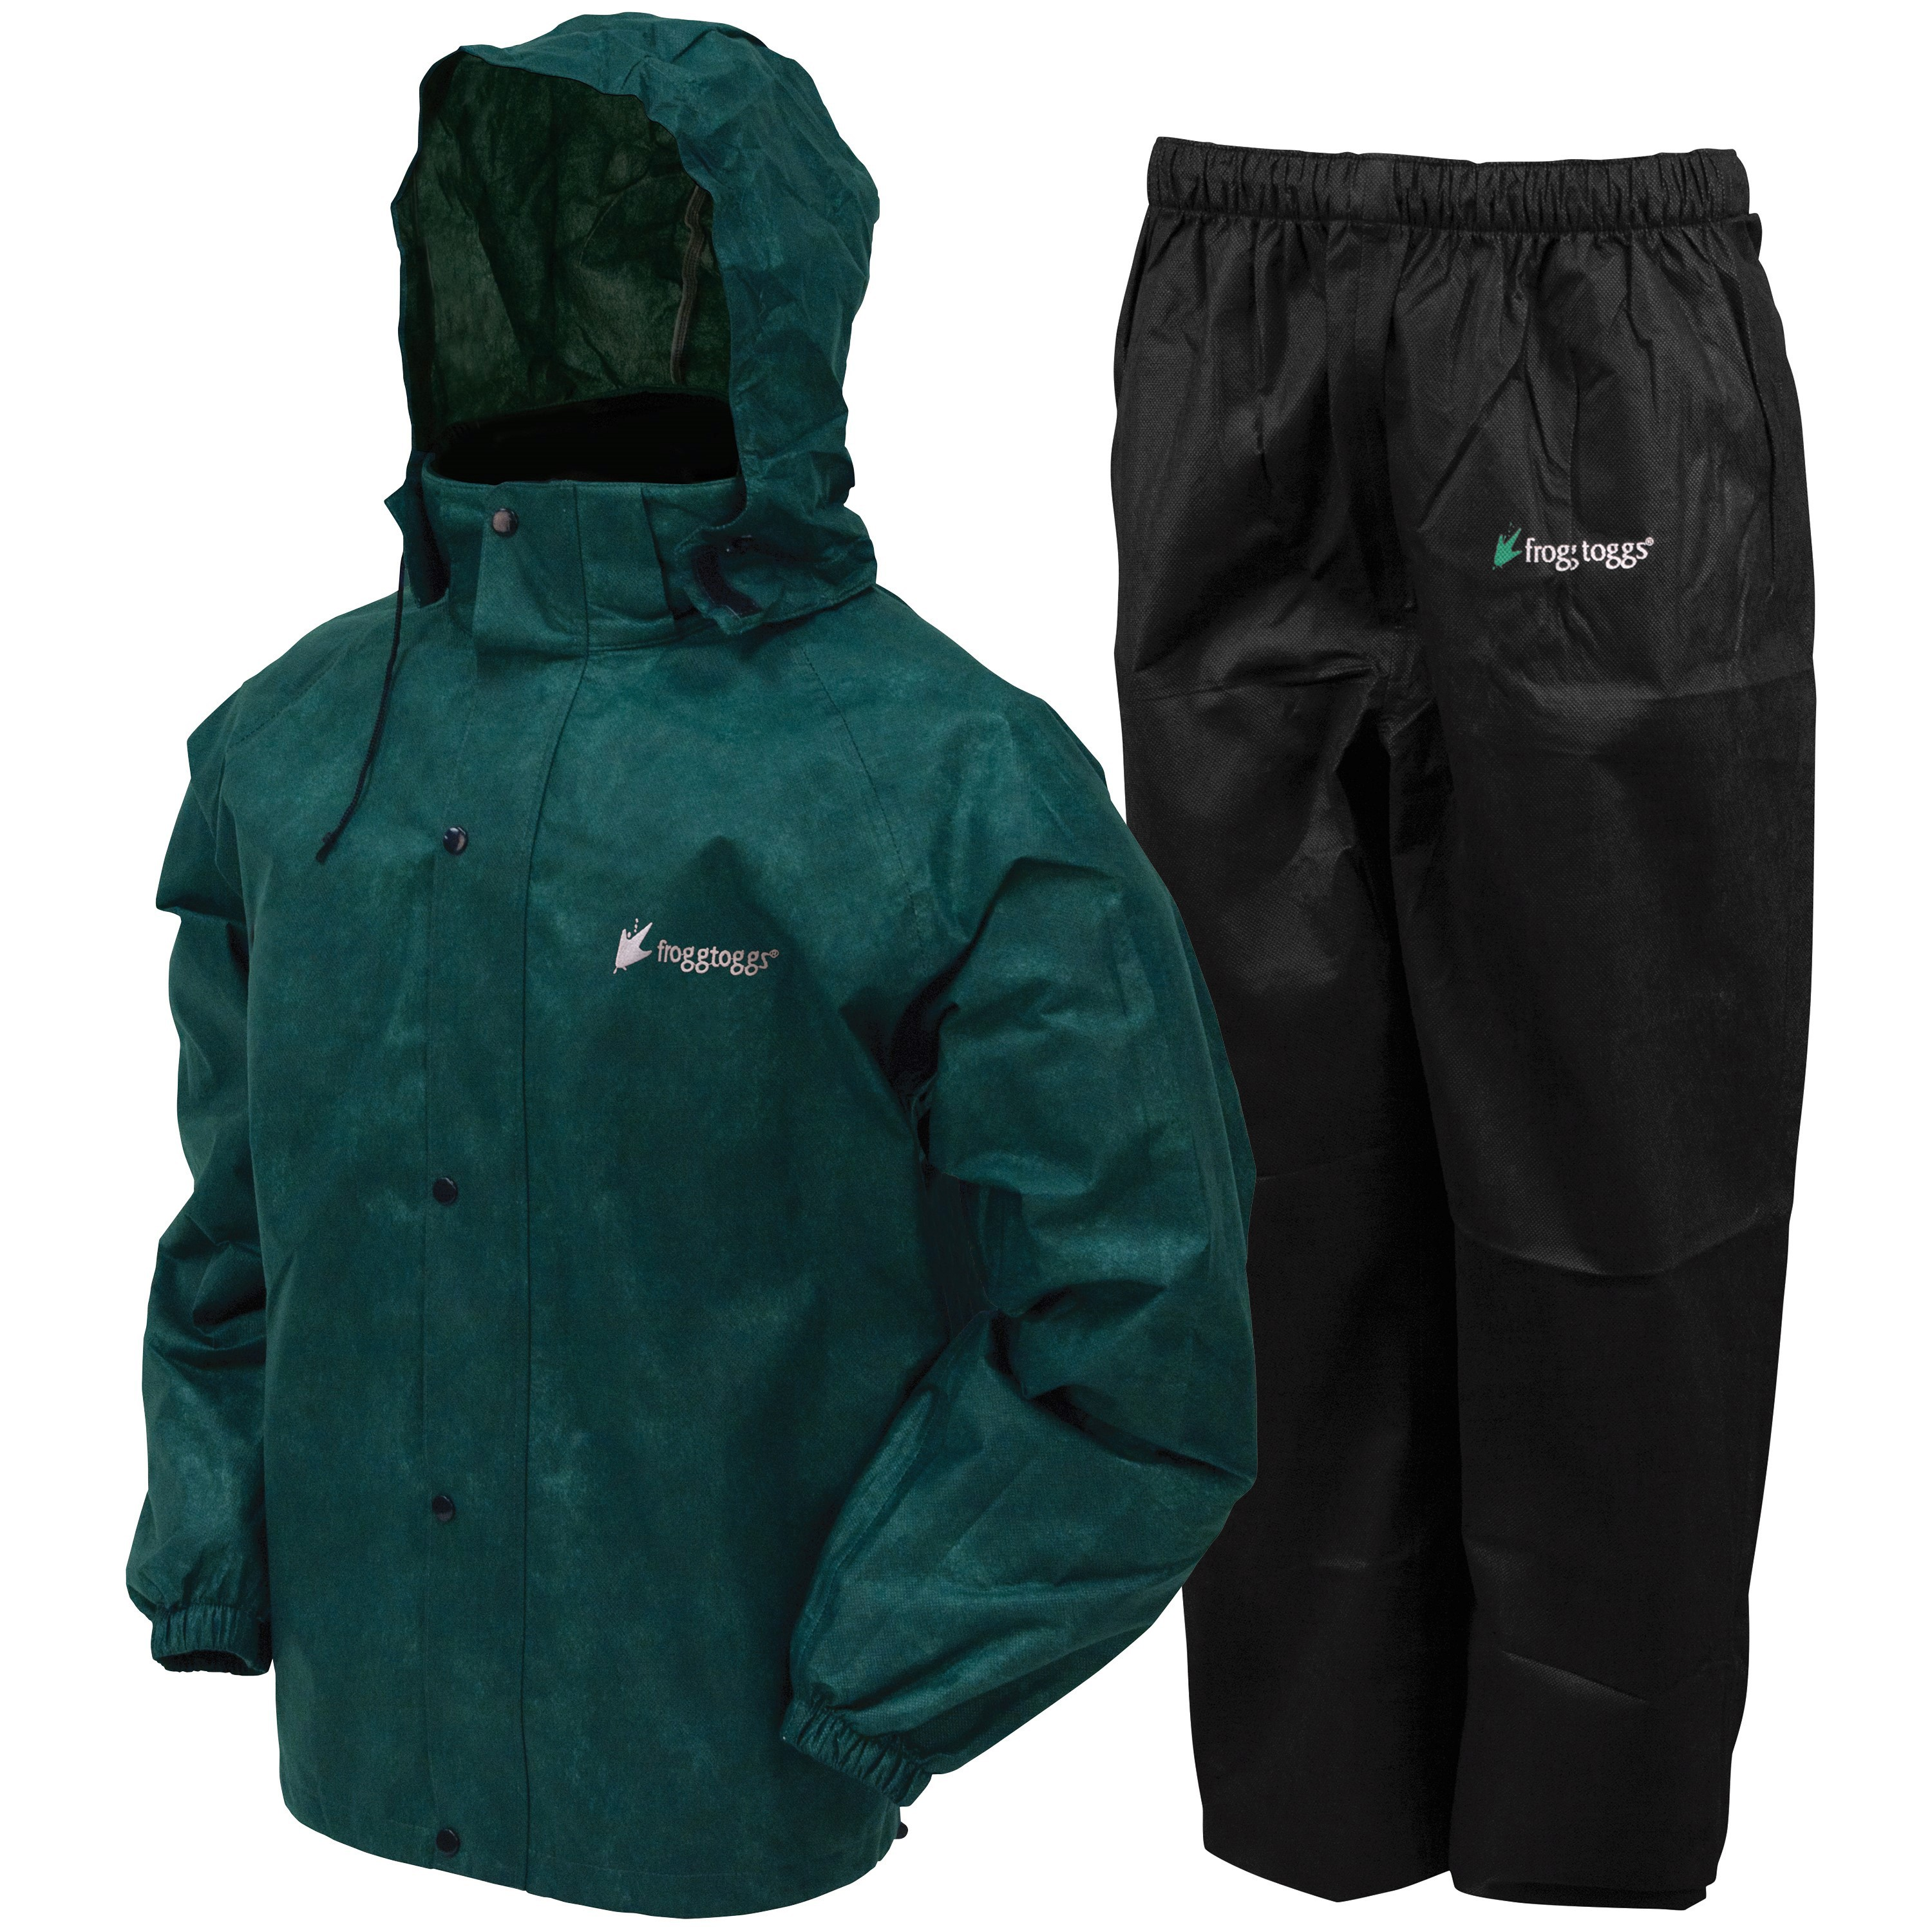 All Sports Suit 2X Large Green/Black, AS1310-109-2X